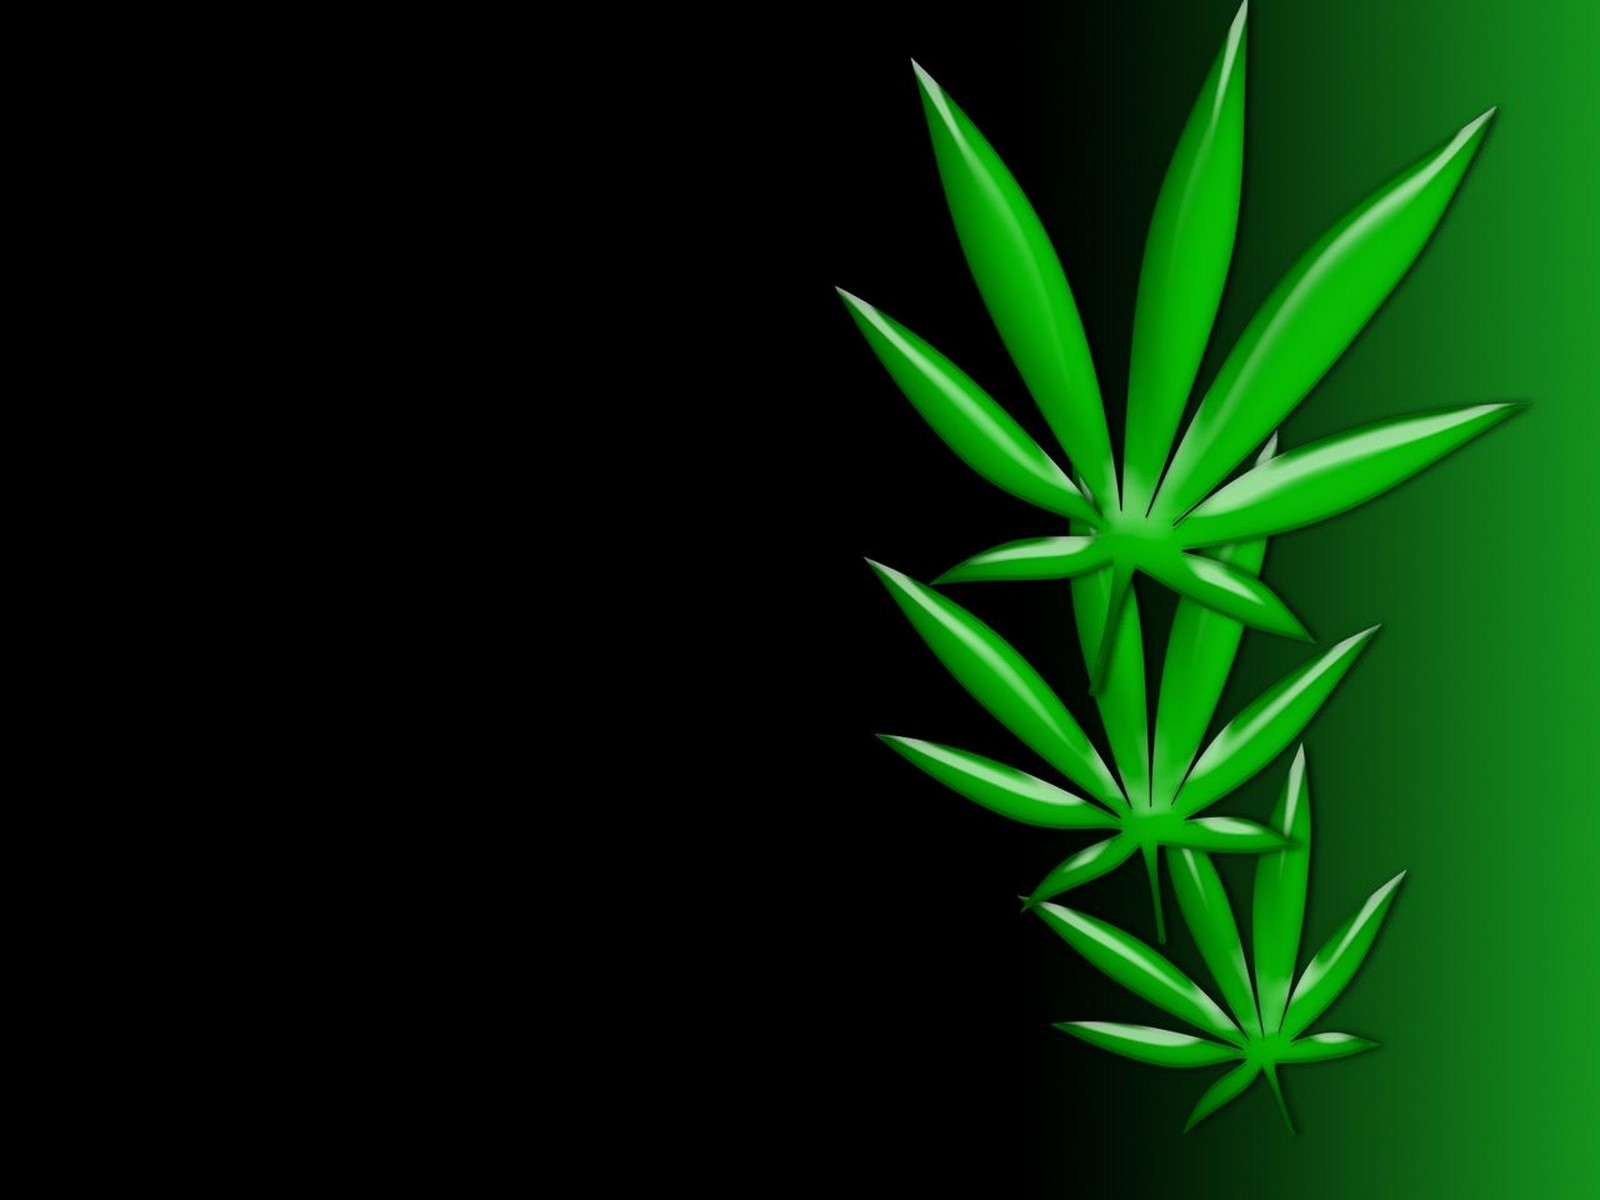 49+] Free Pot Wallpapers for Tablets on ...